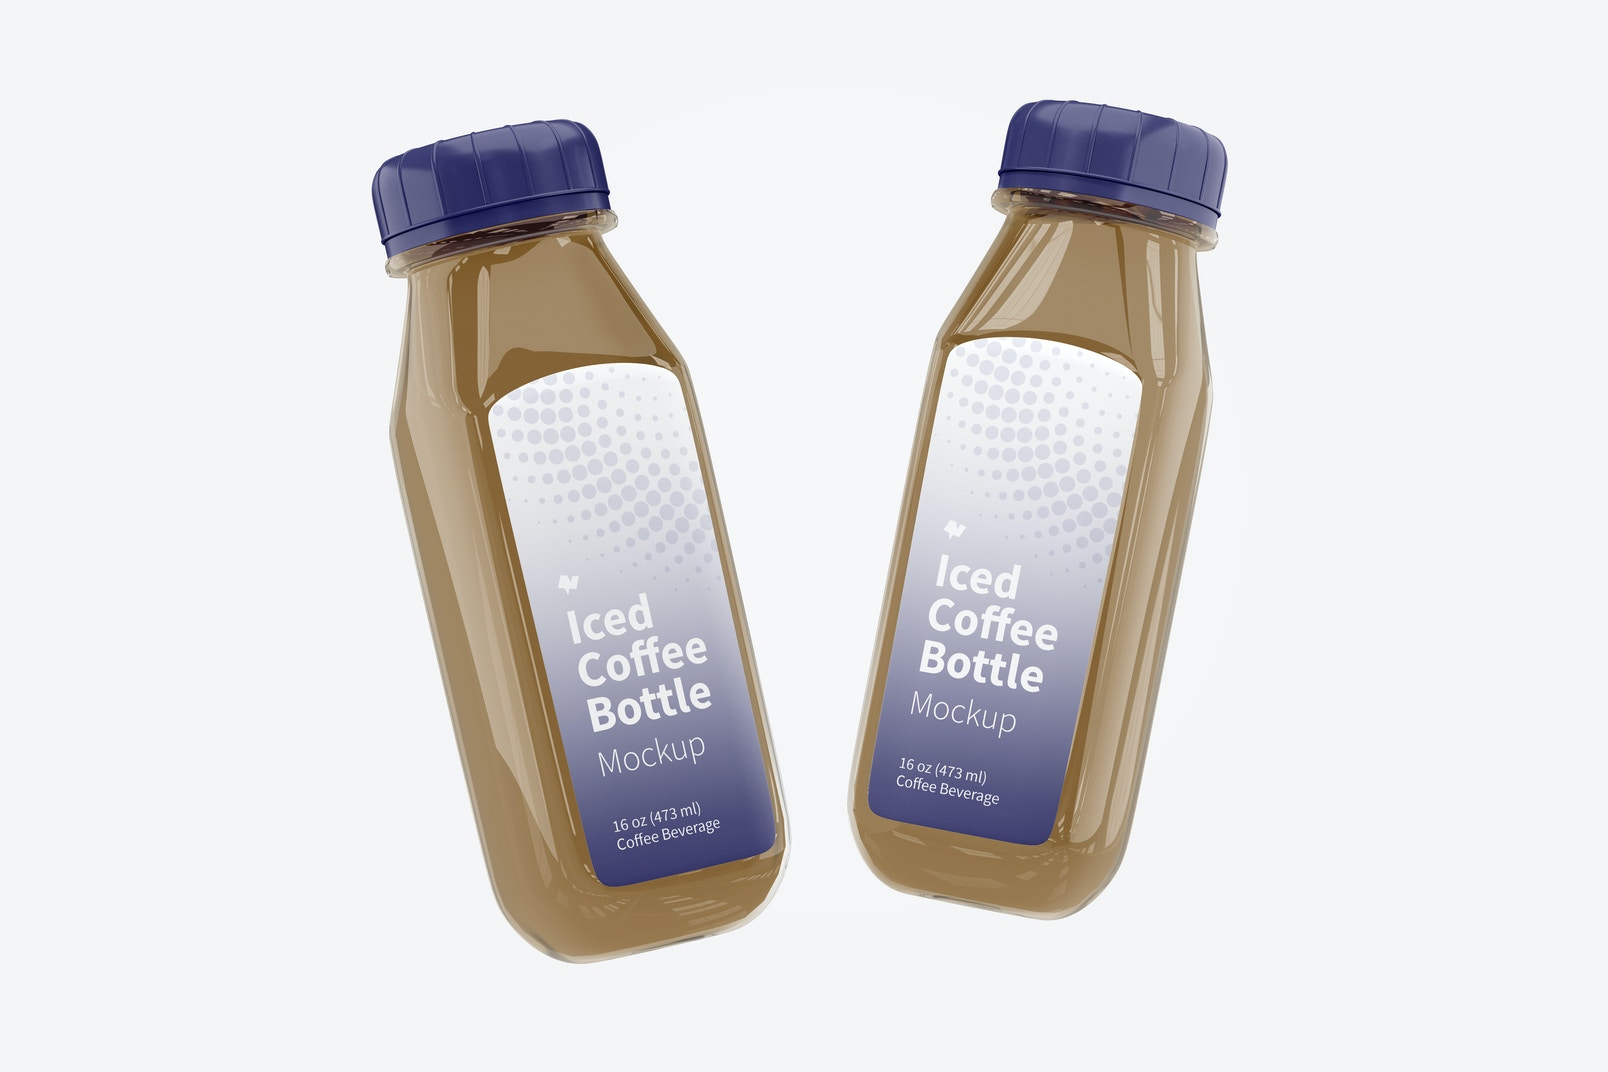 Iced Coffee Glass Bottles Mockup, Floating